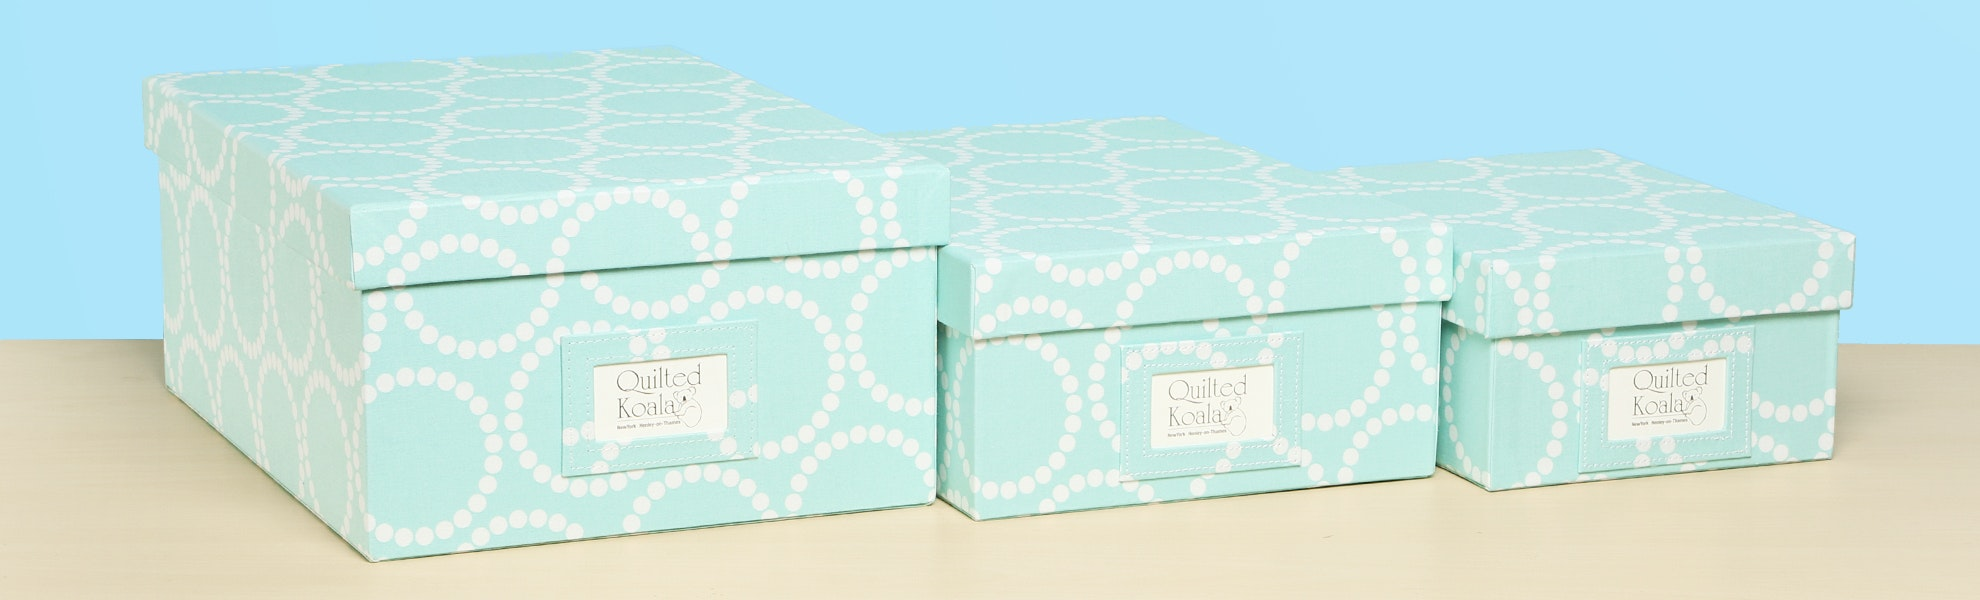 Quilted Koala Fabric Boxes